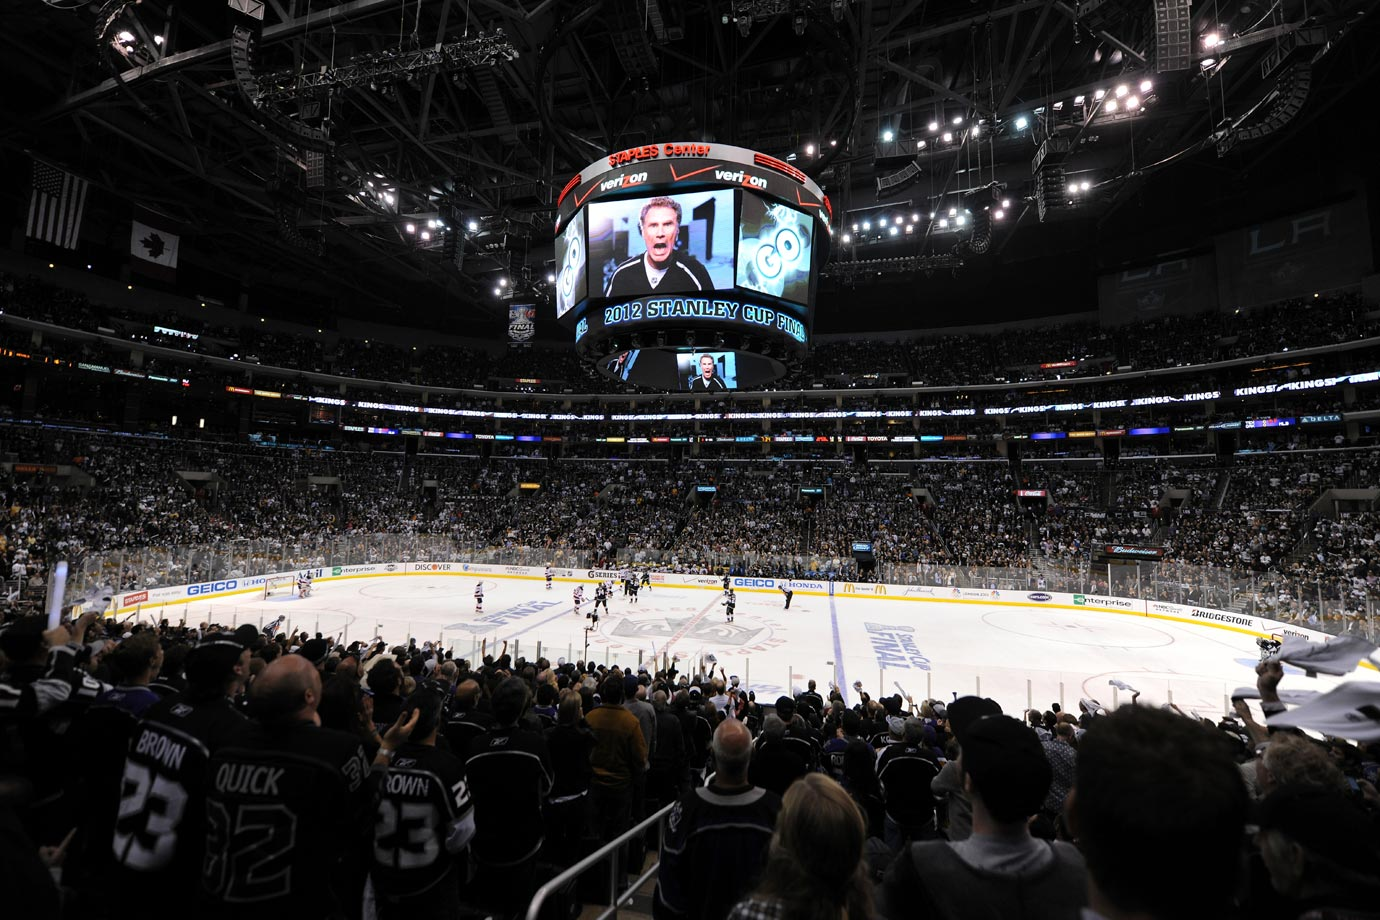 Will Ferrell, appearing on the jumbotron, gets the crowd pumped up during Game Four of the Stanley Cup Final between the Los Angeles Kings and New Jersey Devils on June 6, 2012 at Staples Center in Los Angeles.